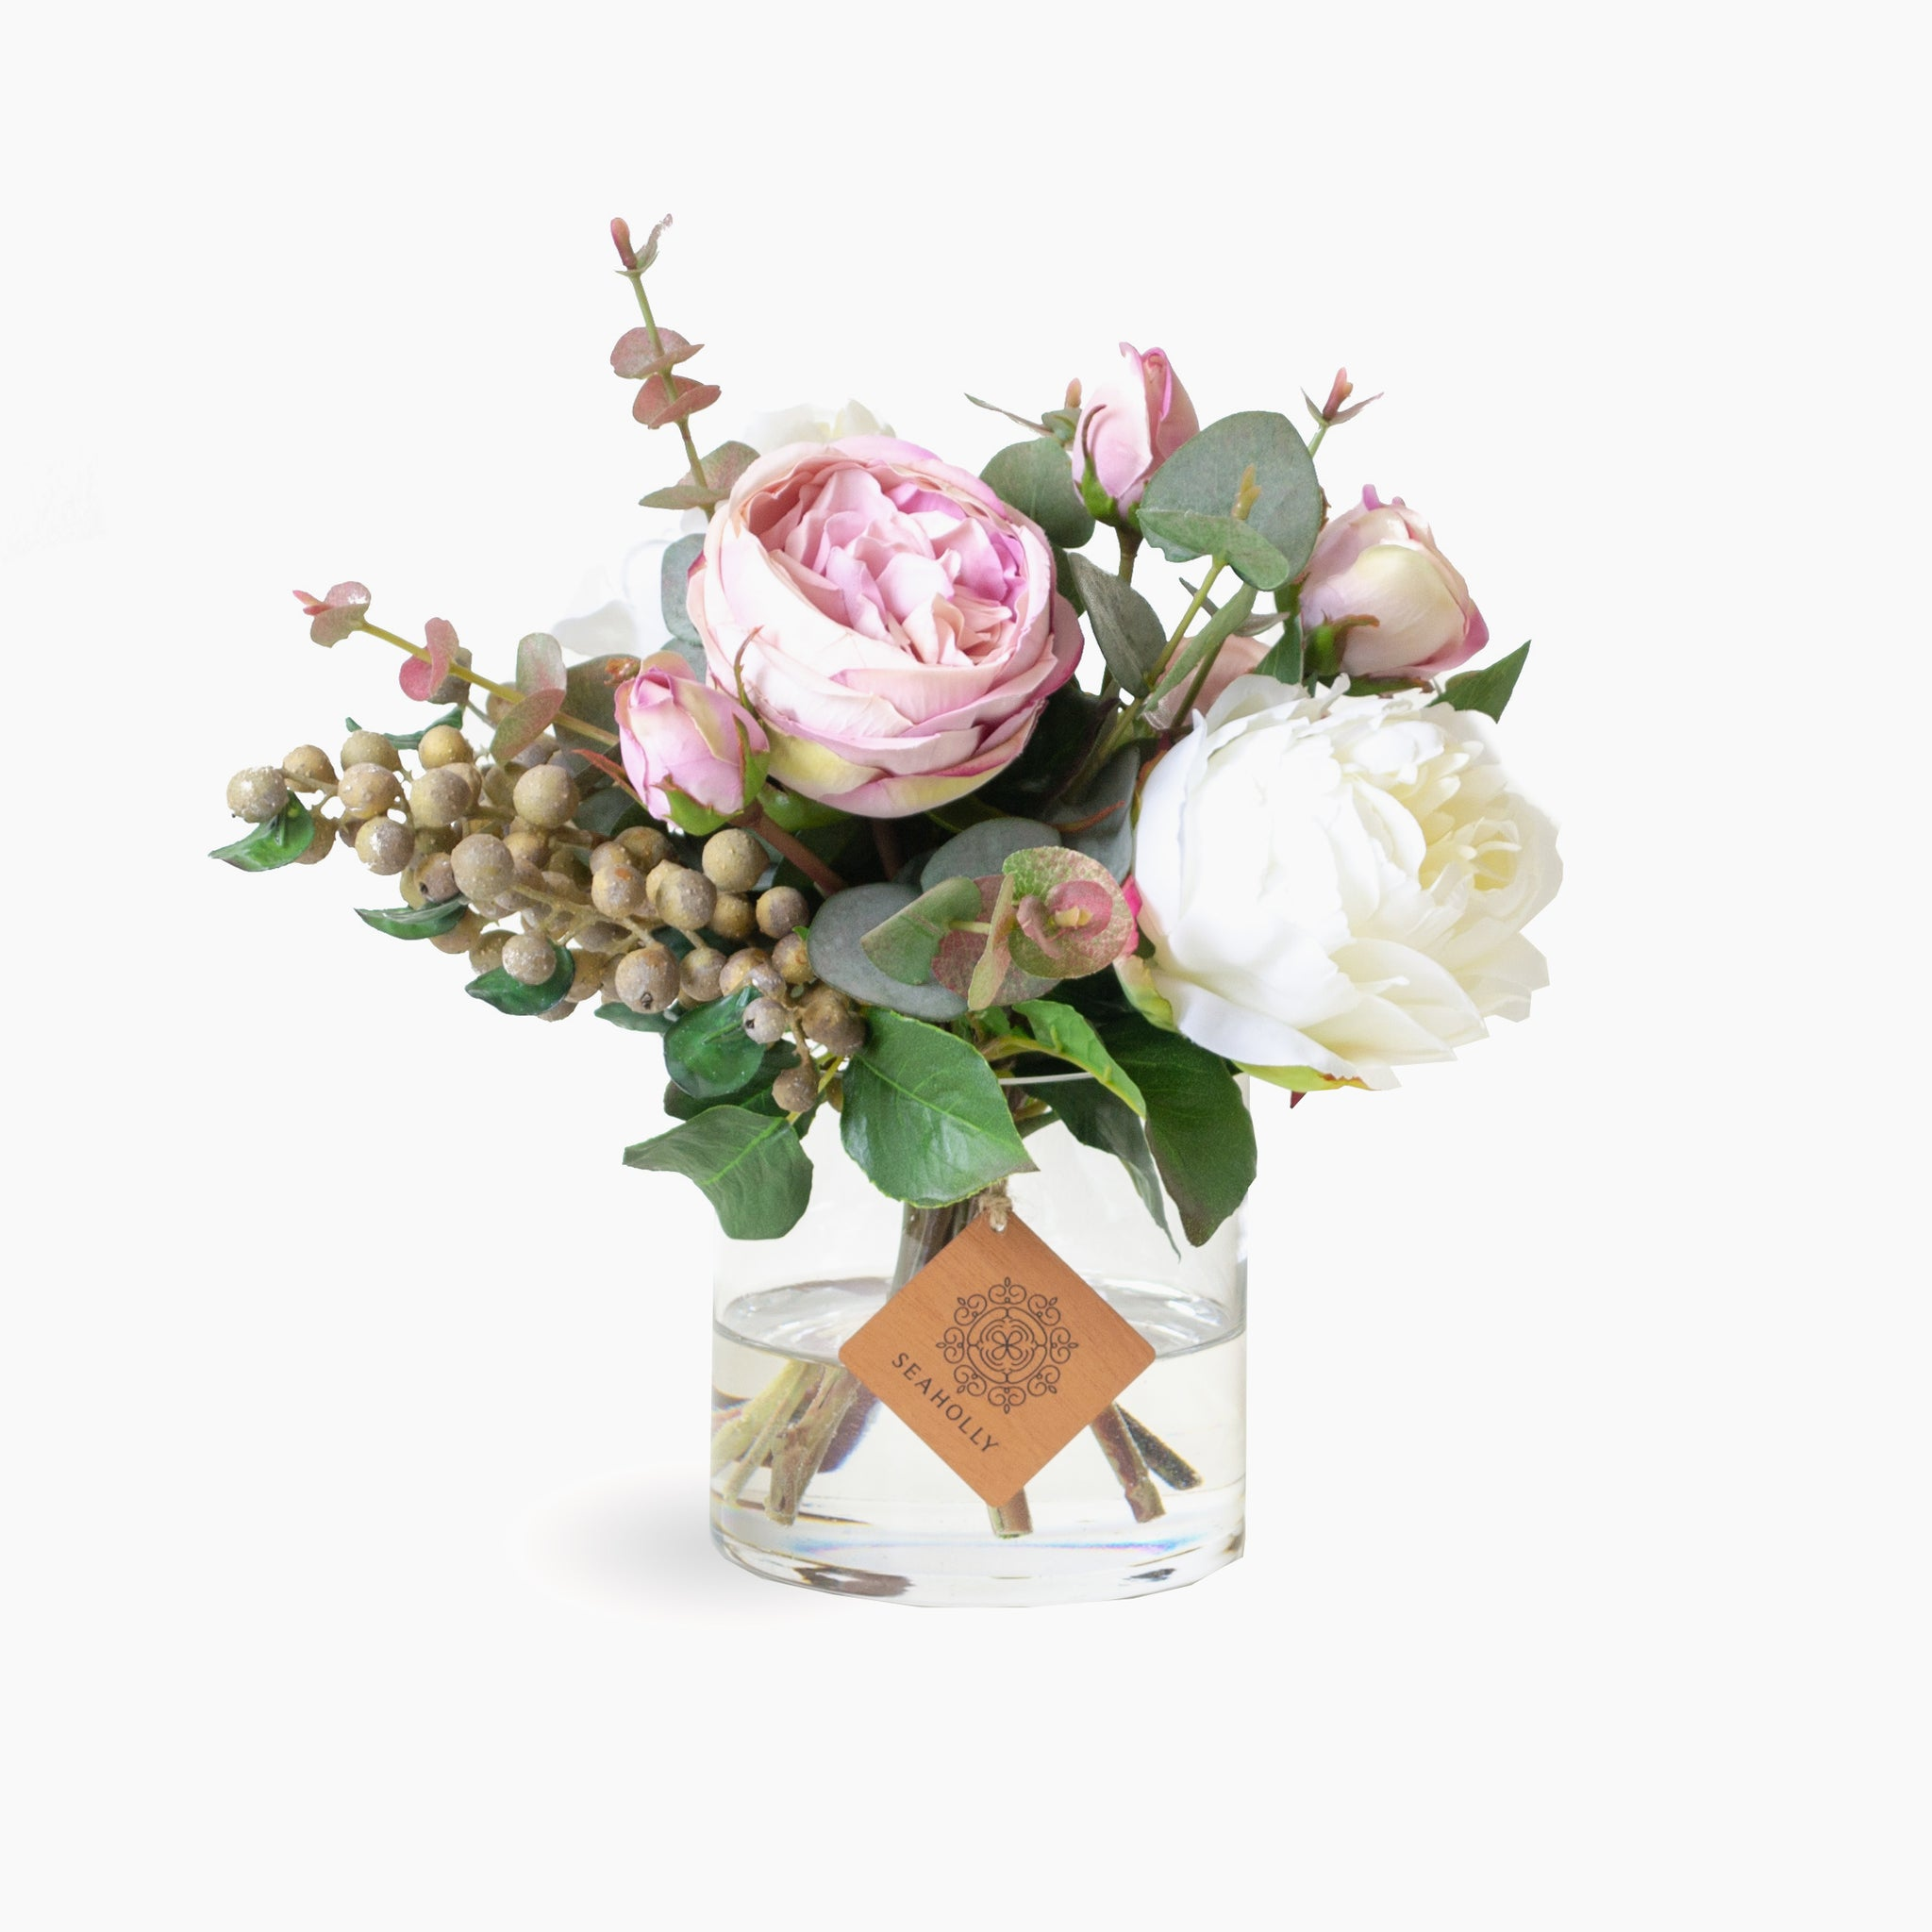 Dusty pink roses, peonies, berries and foliage (Small)